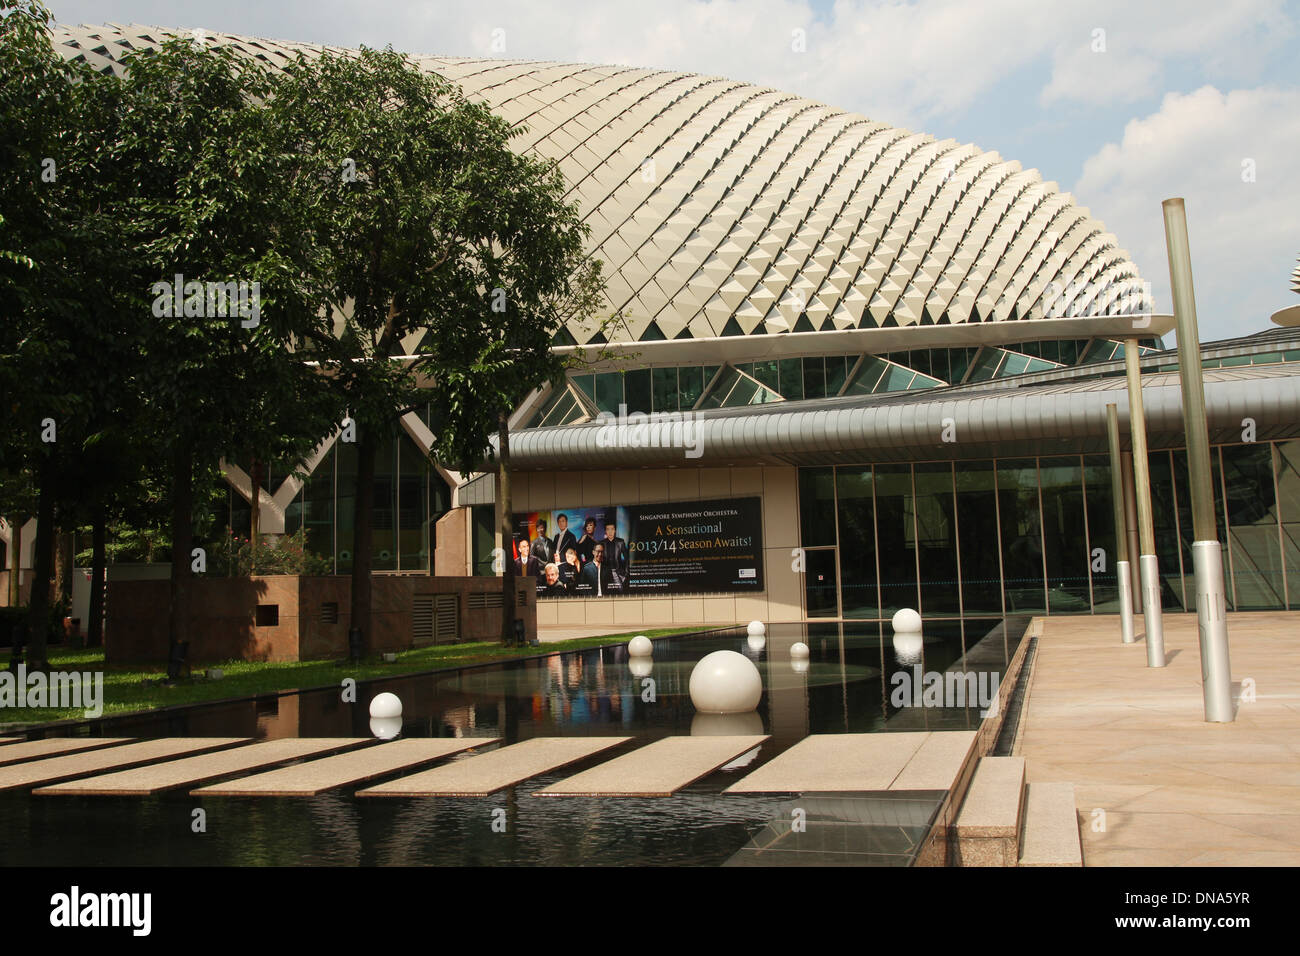 Reflecting Pool at the Esplanade - Theatres on the Bay. Singapore. - Stock Image